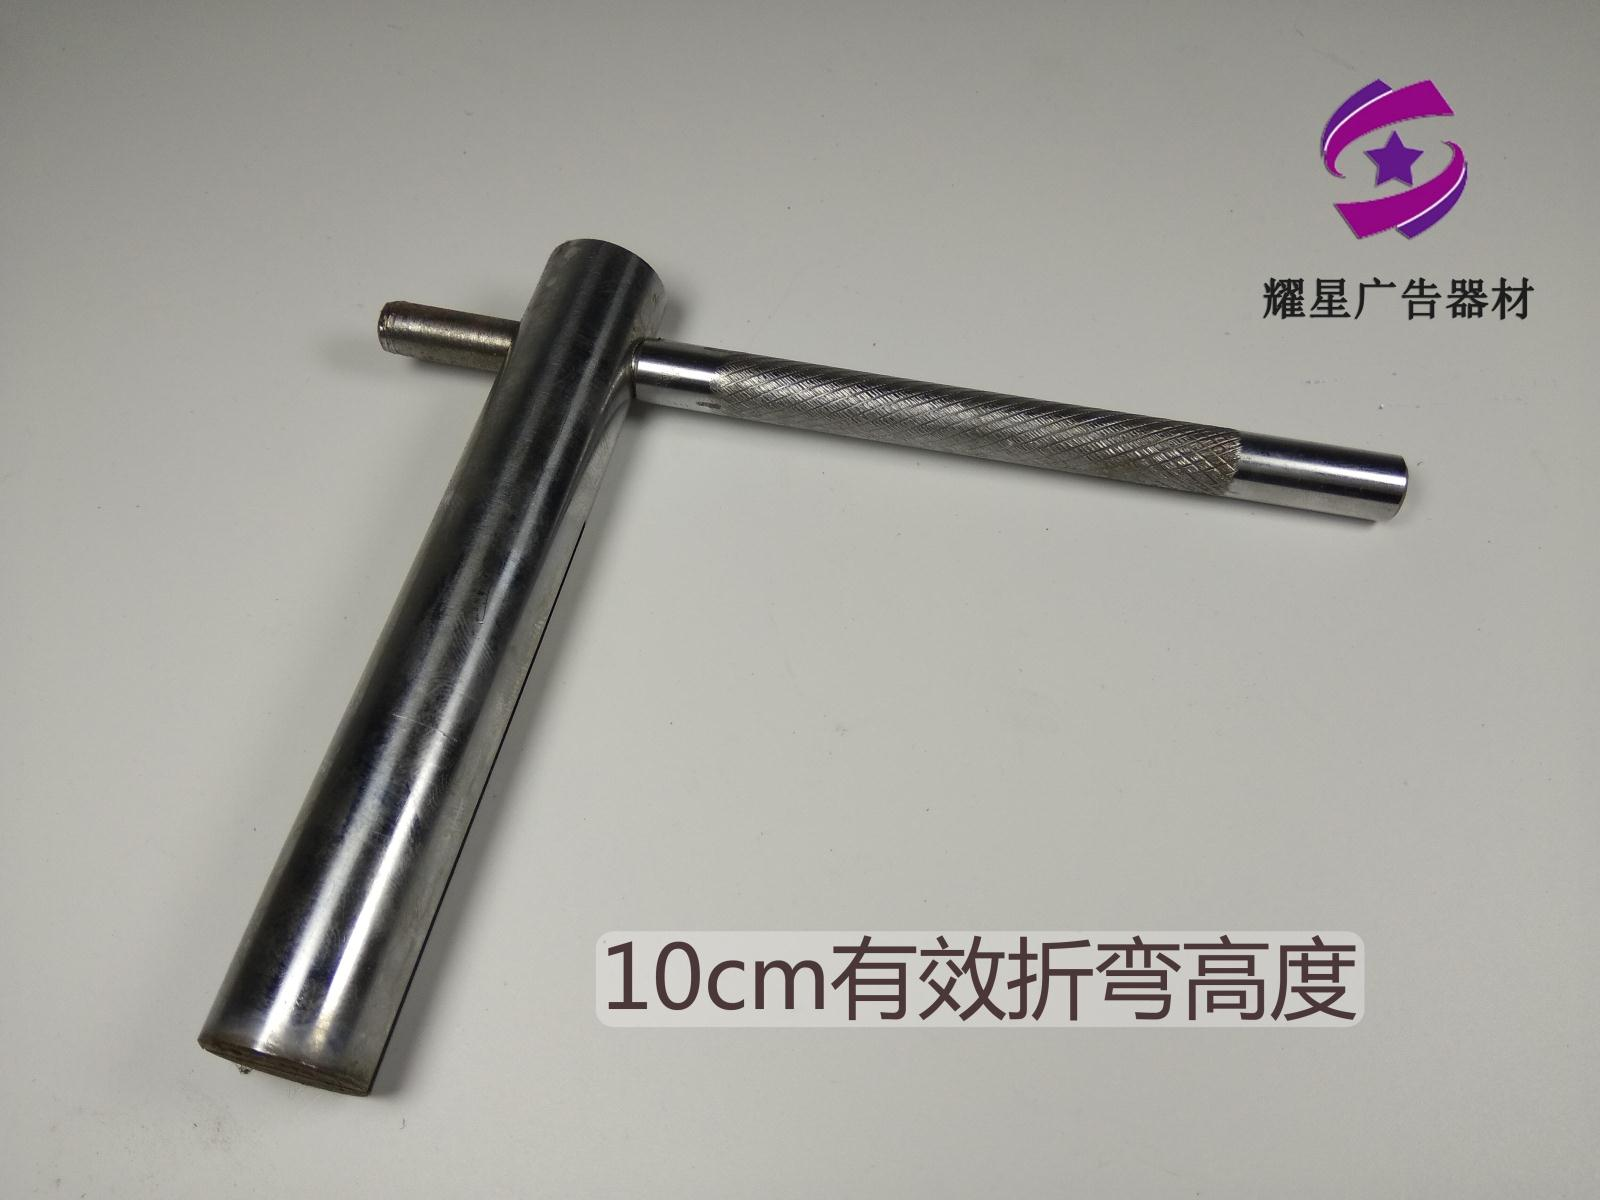 Laser welding machine supporting the edge of three sets of flexible curved edge stainless steel can bend three piece